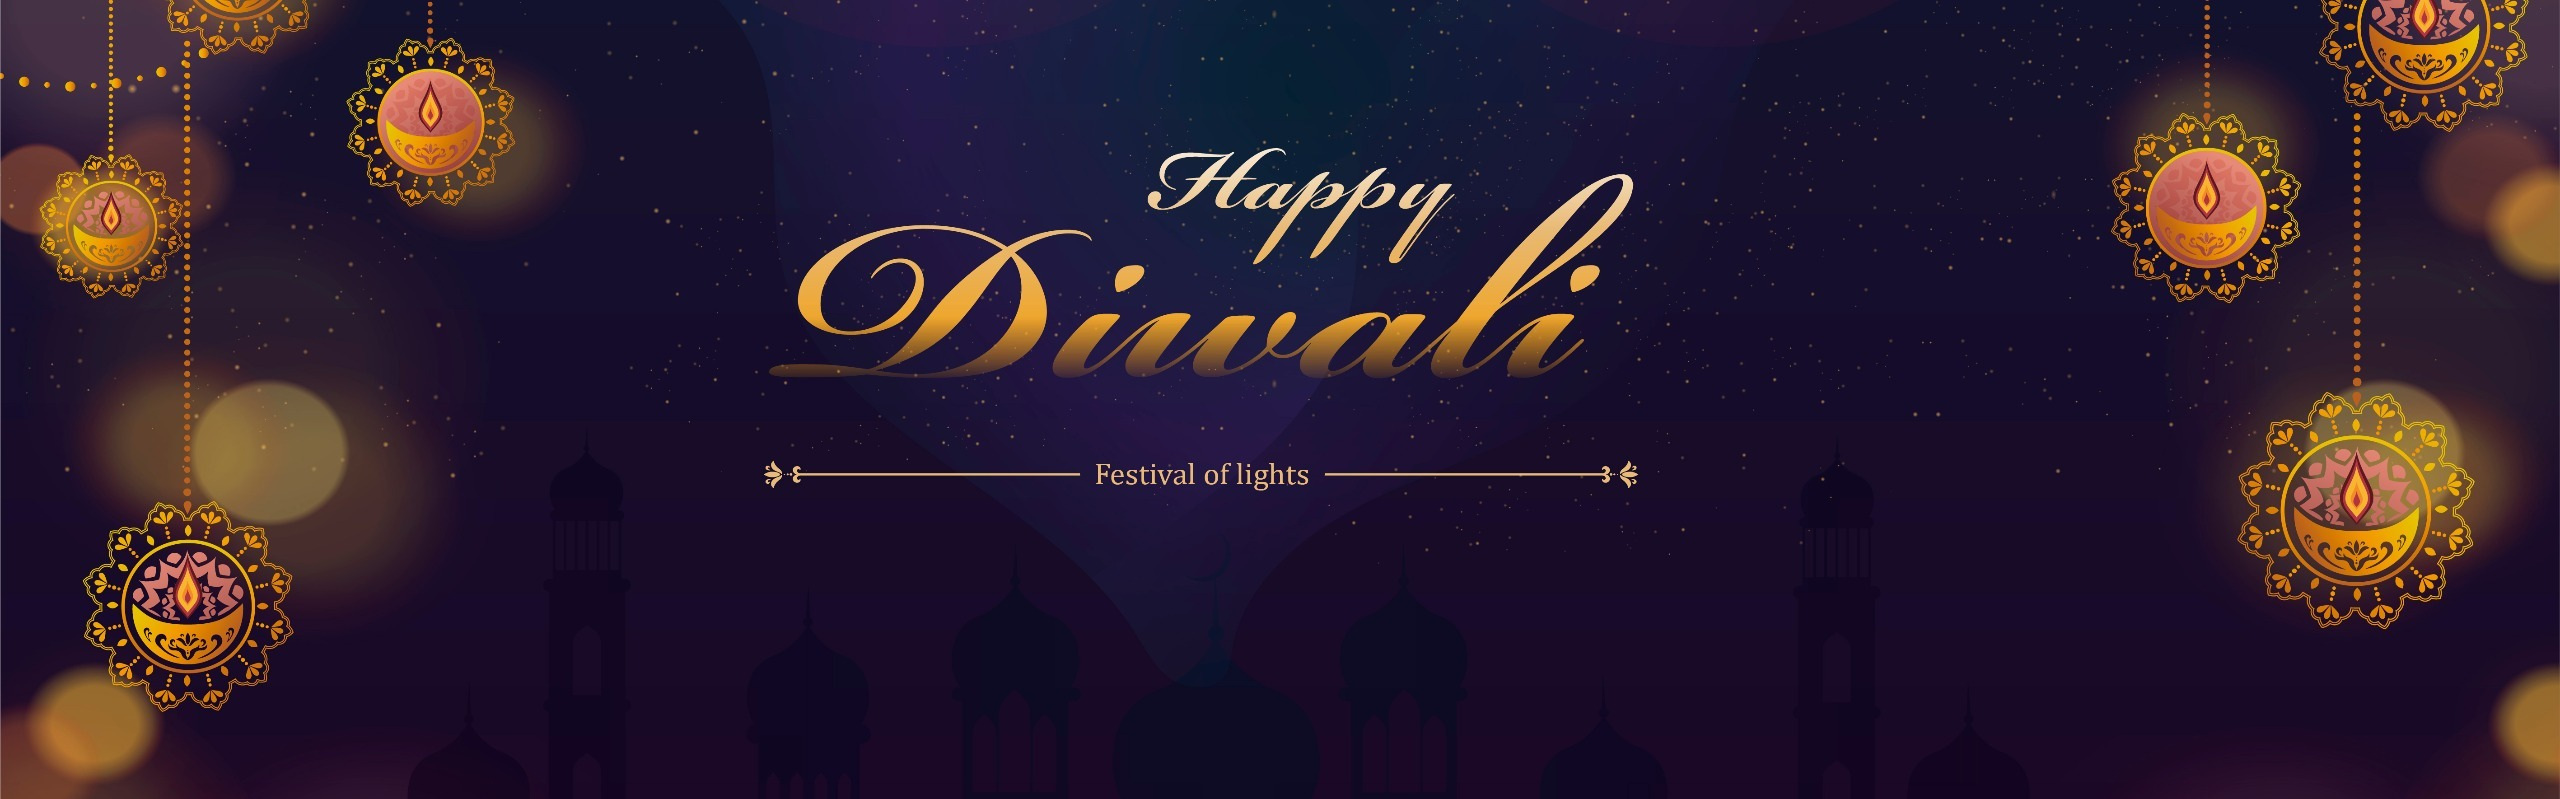 Happy Diwali! — Quotes, Greetings, Wishes, and Images